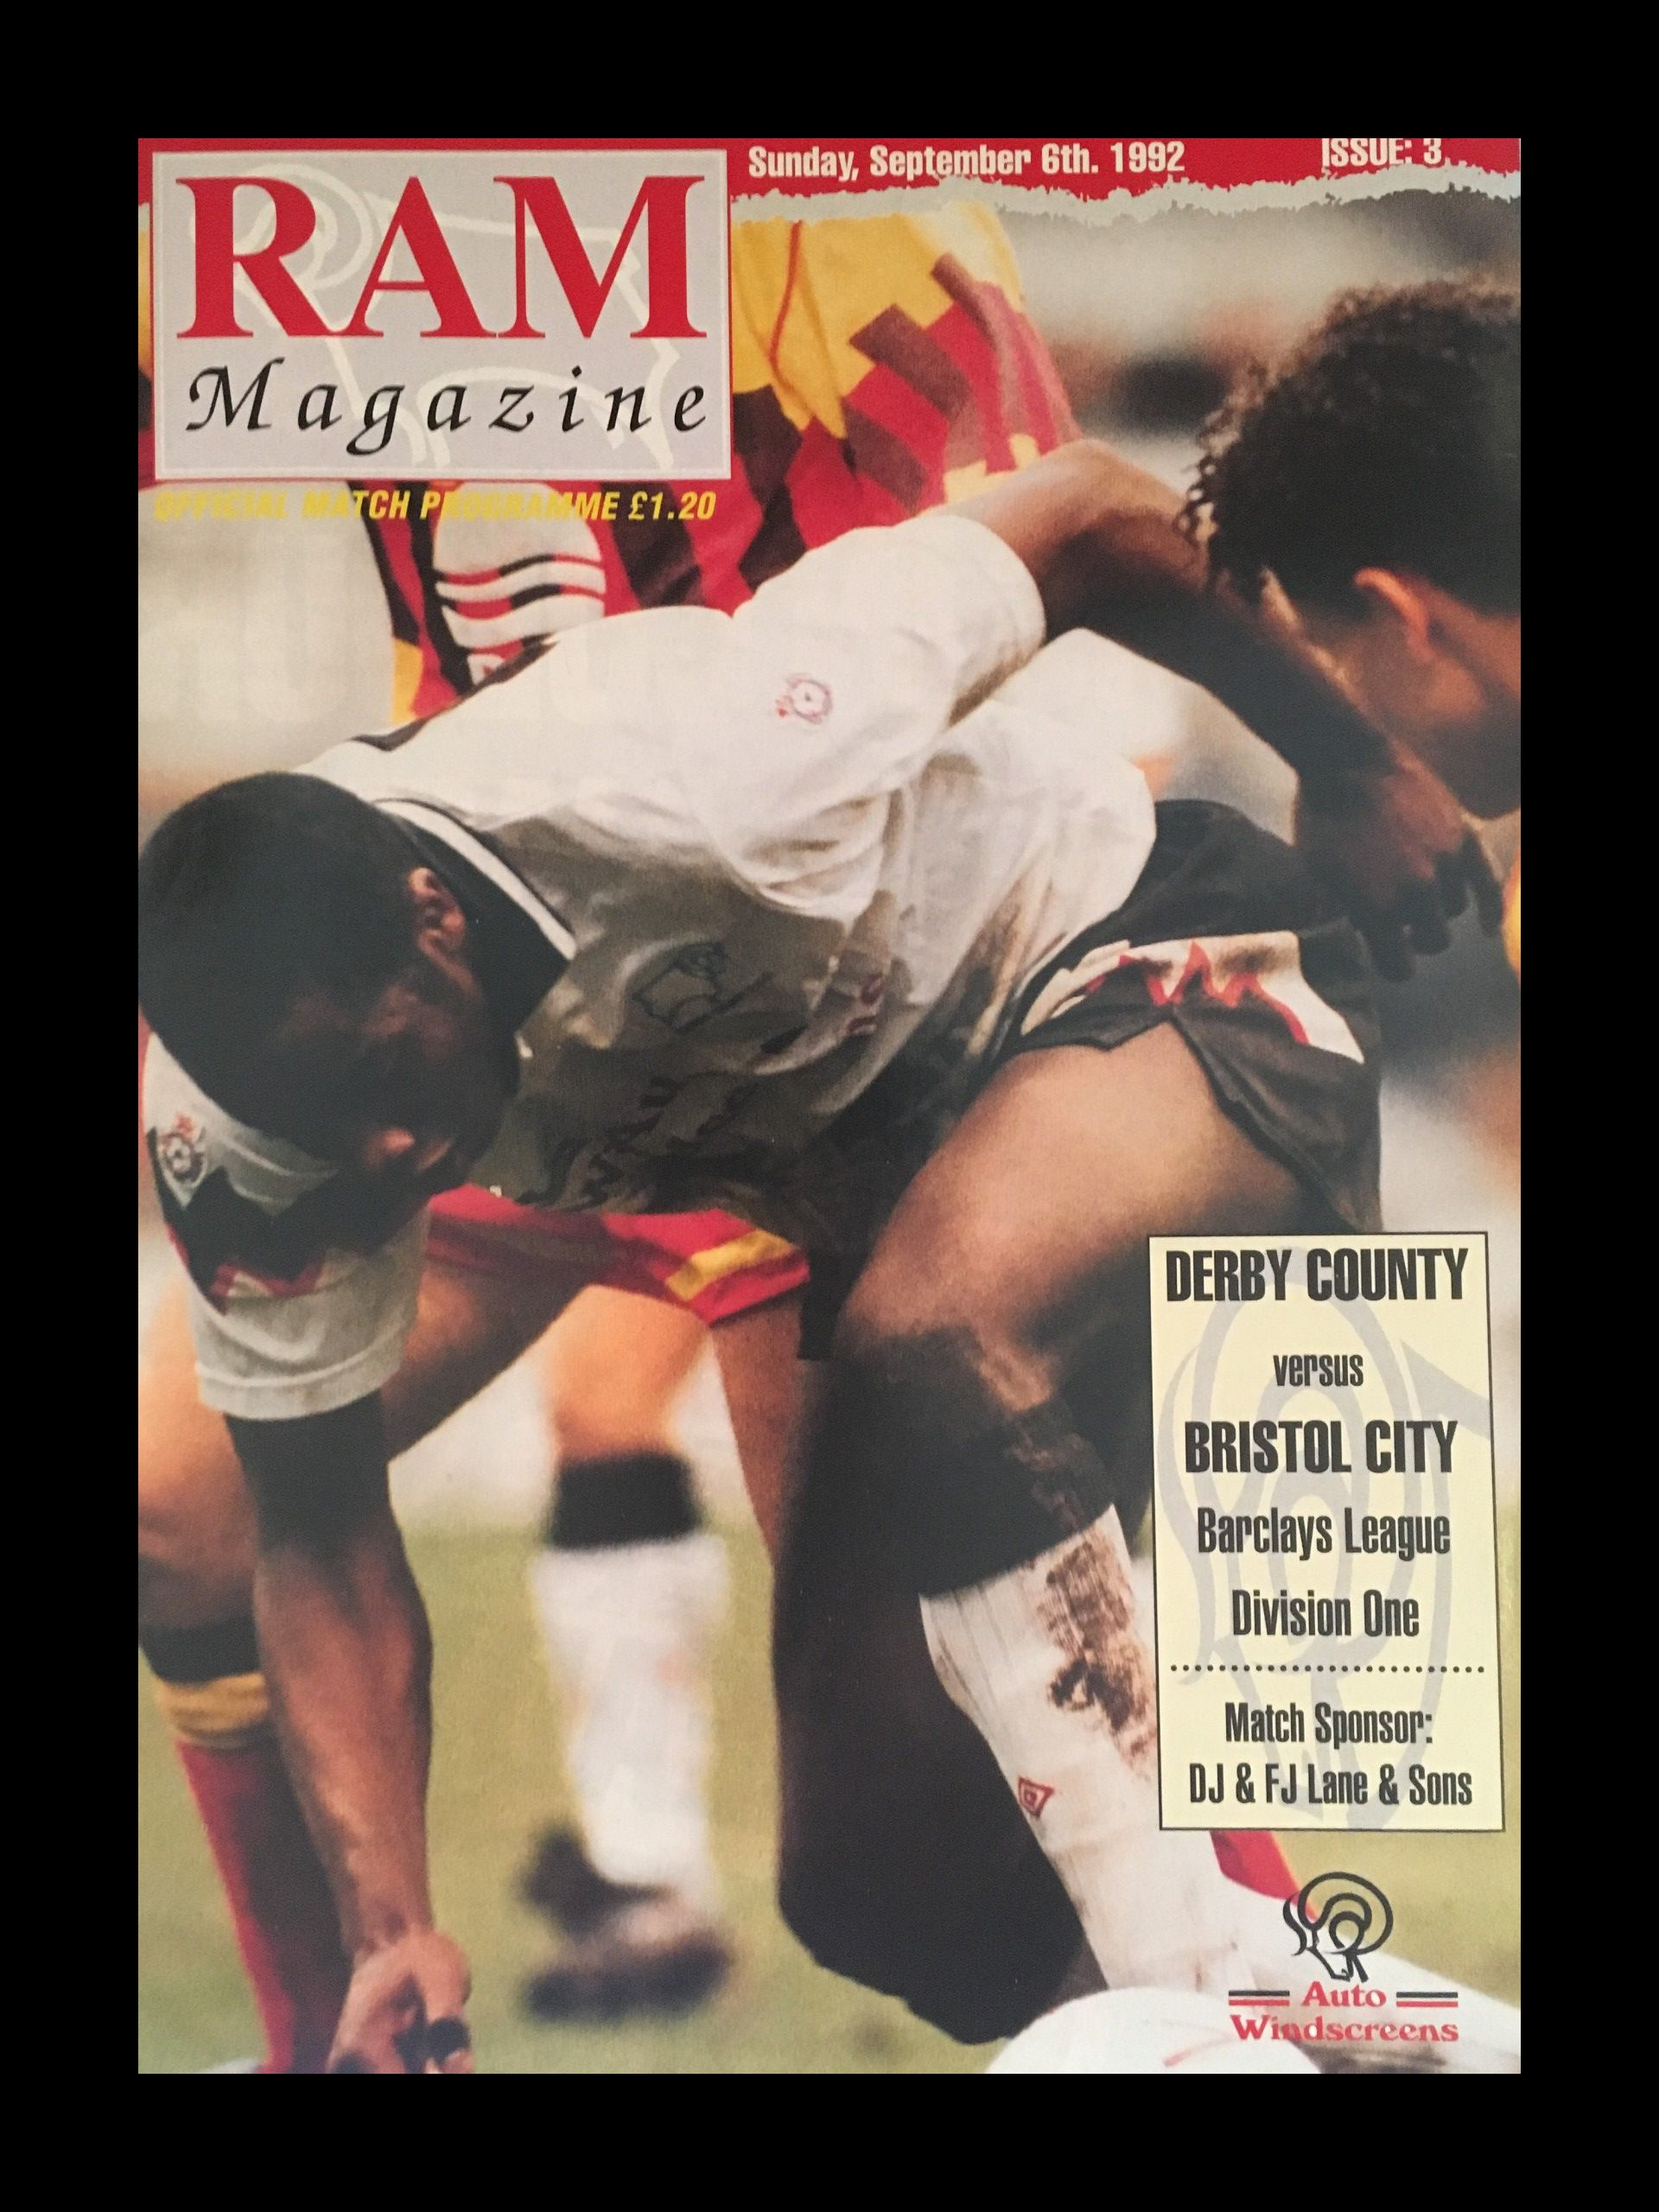 Derby County v Bristol City 06-09-1992 Programme